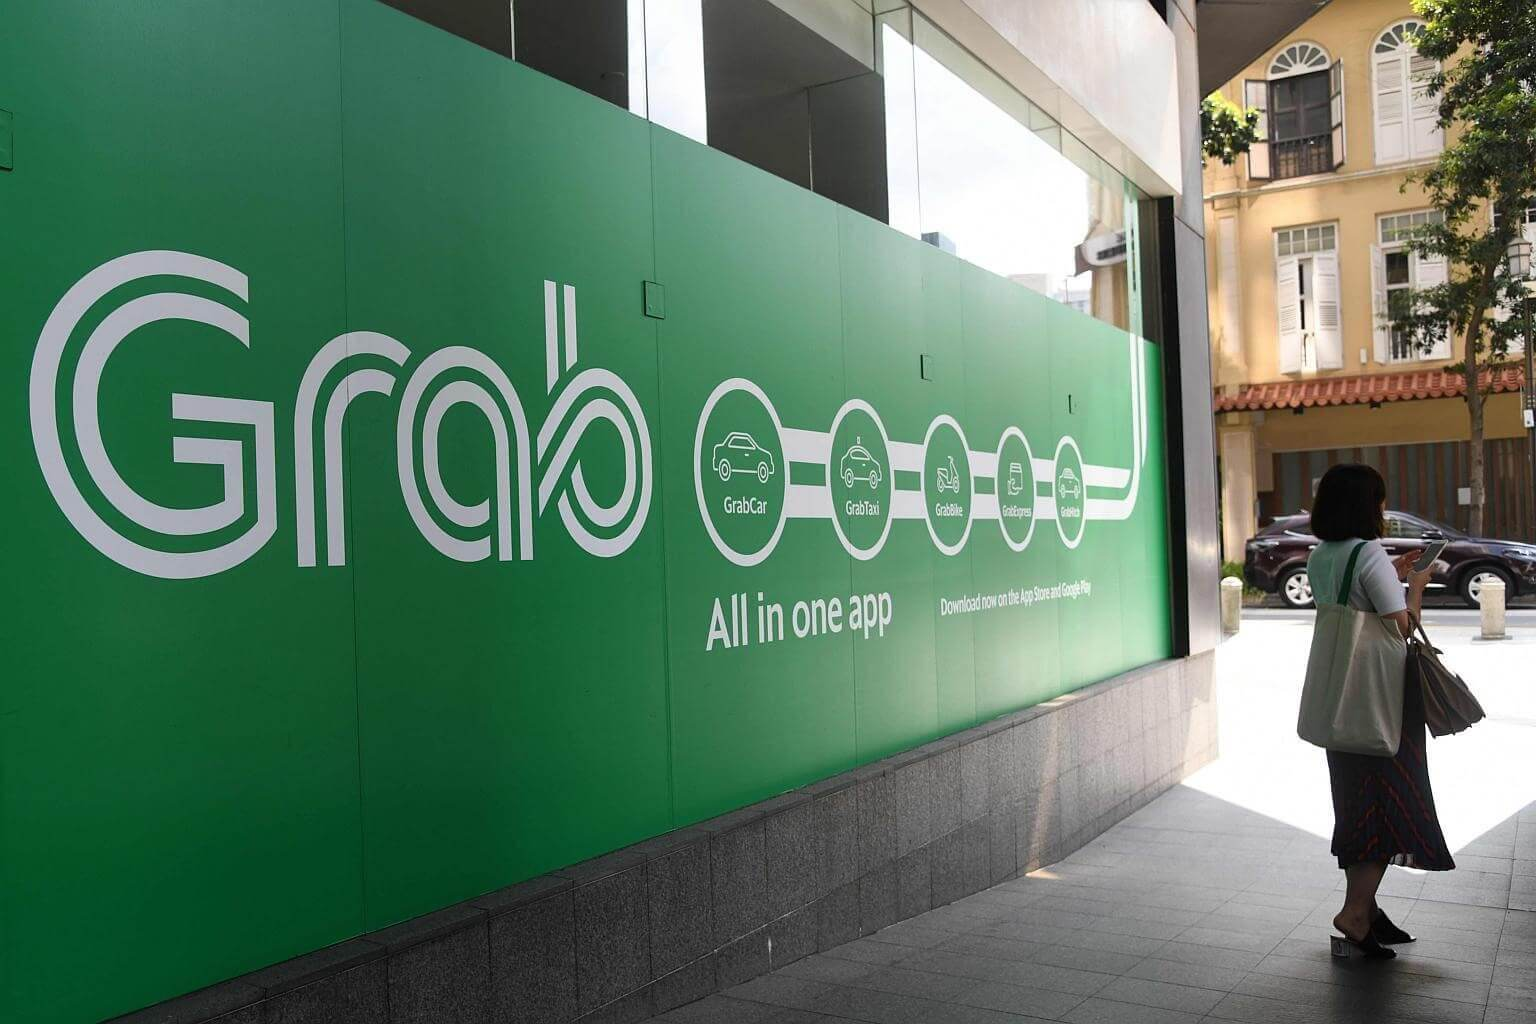 Singapore-based tech giant 'Grab' Open to More Funding